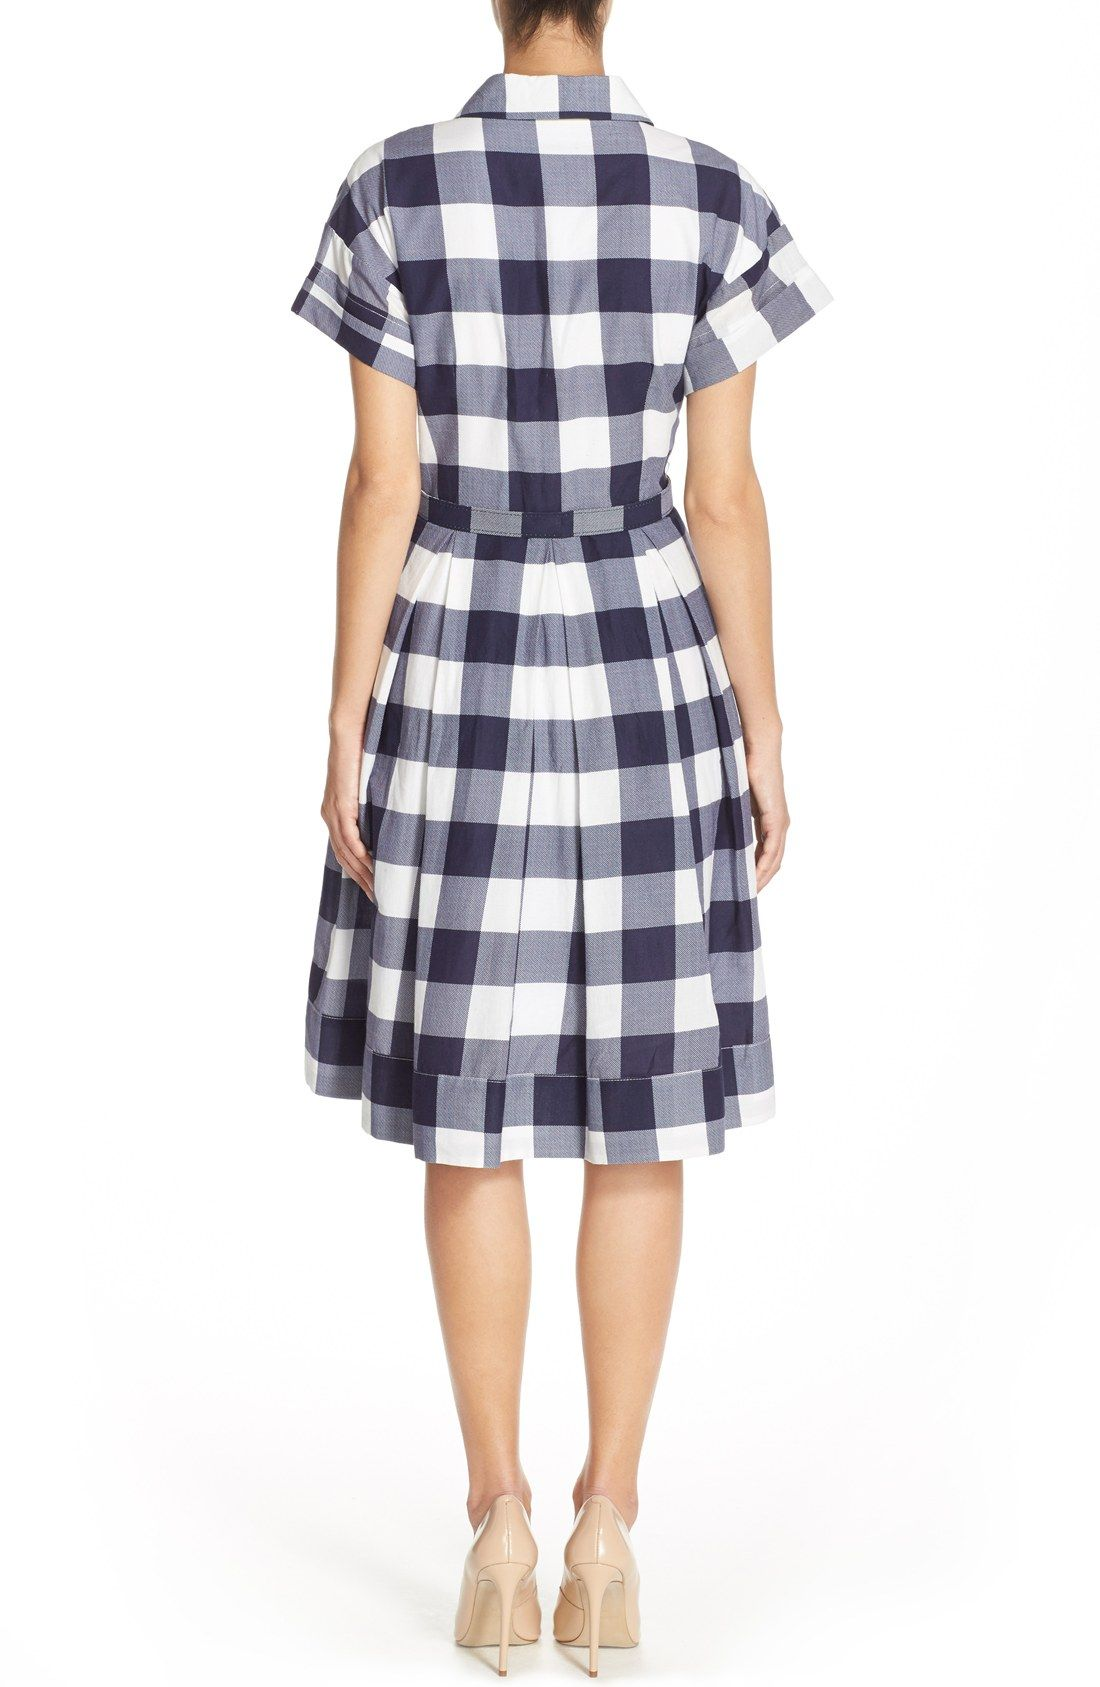 Eliza j gingham shirt dress regular u petite 洋服のデザイン